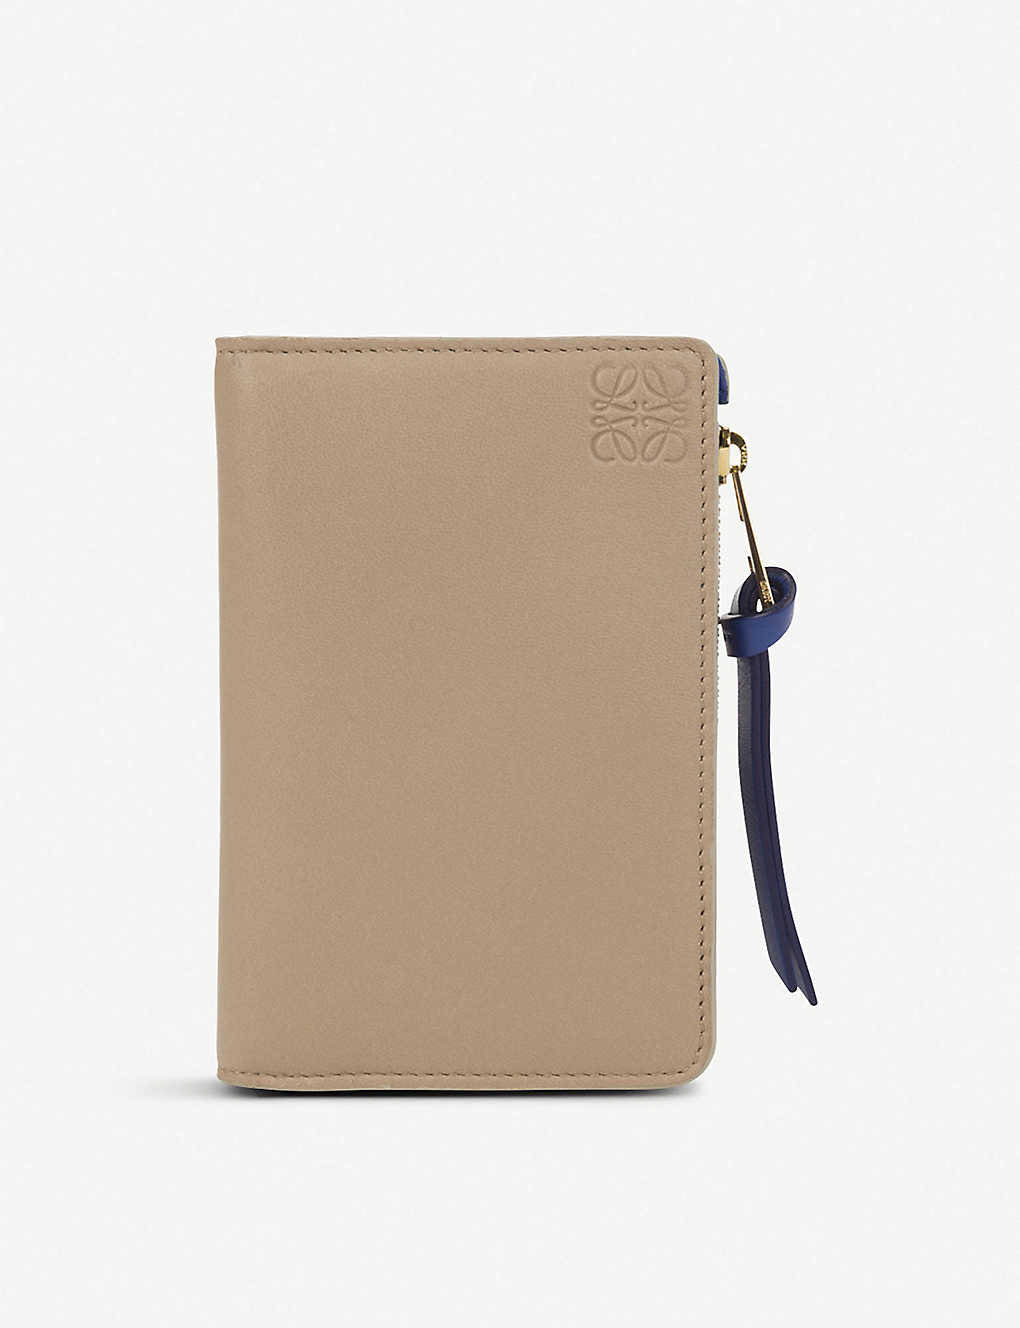 62736b8266 LOEWE - Small zip around leather wallet | Selfridges.com